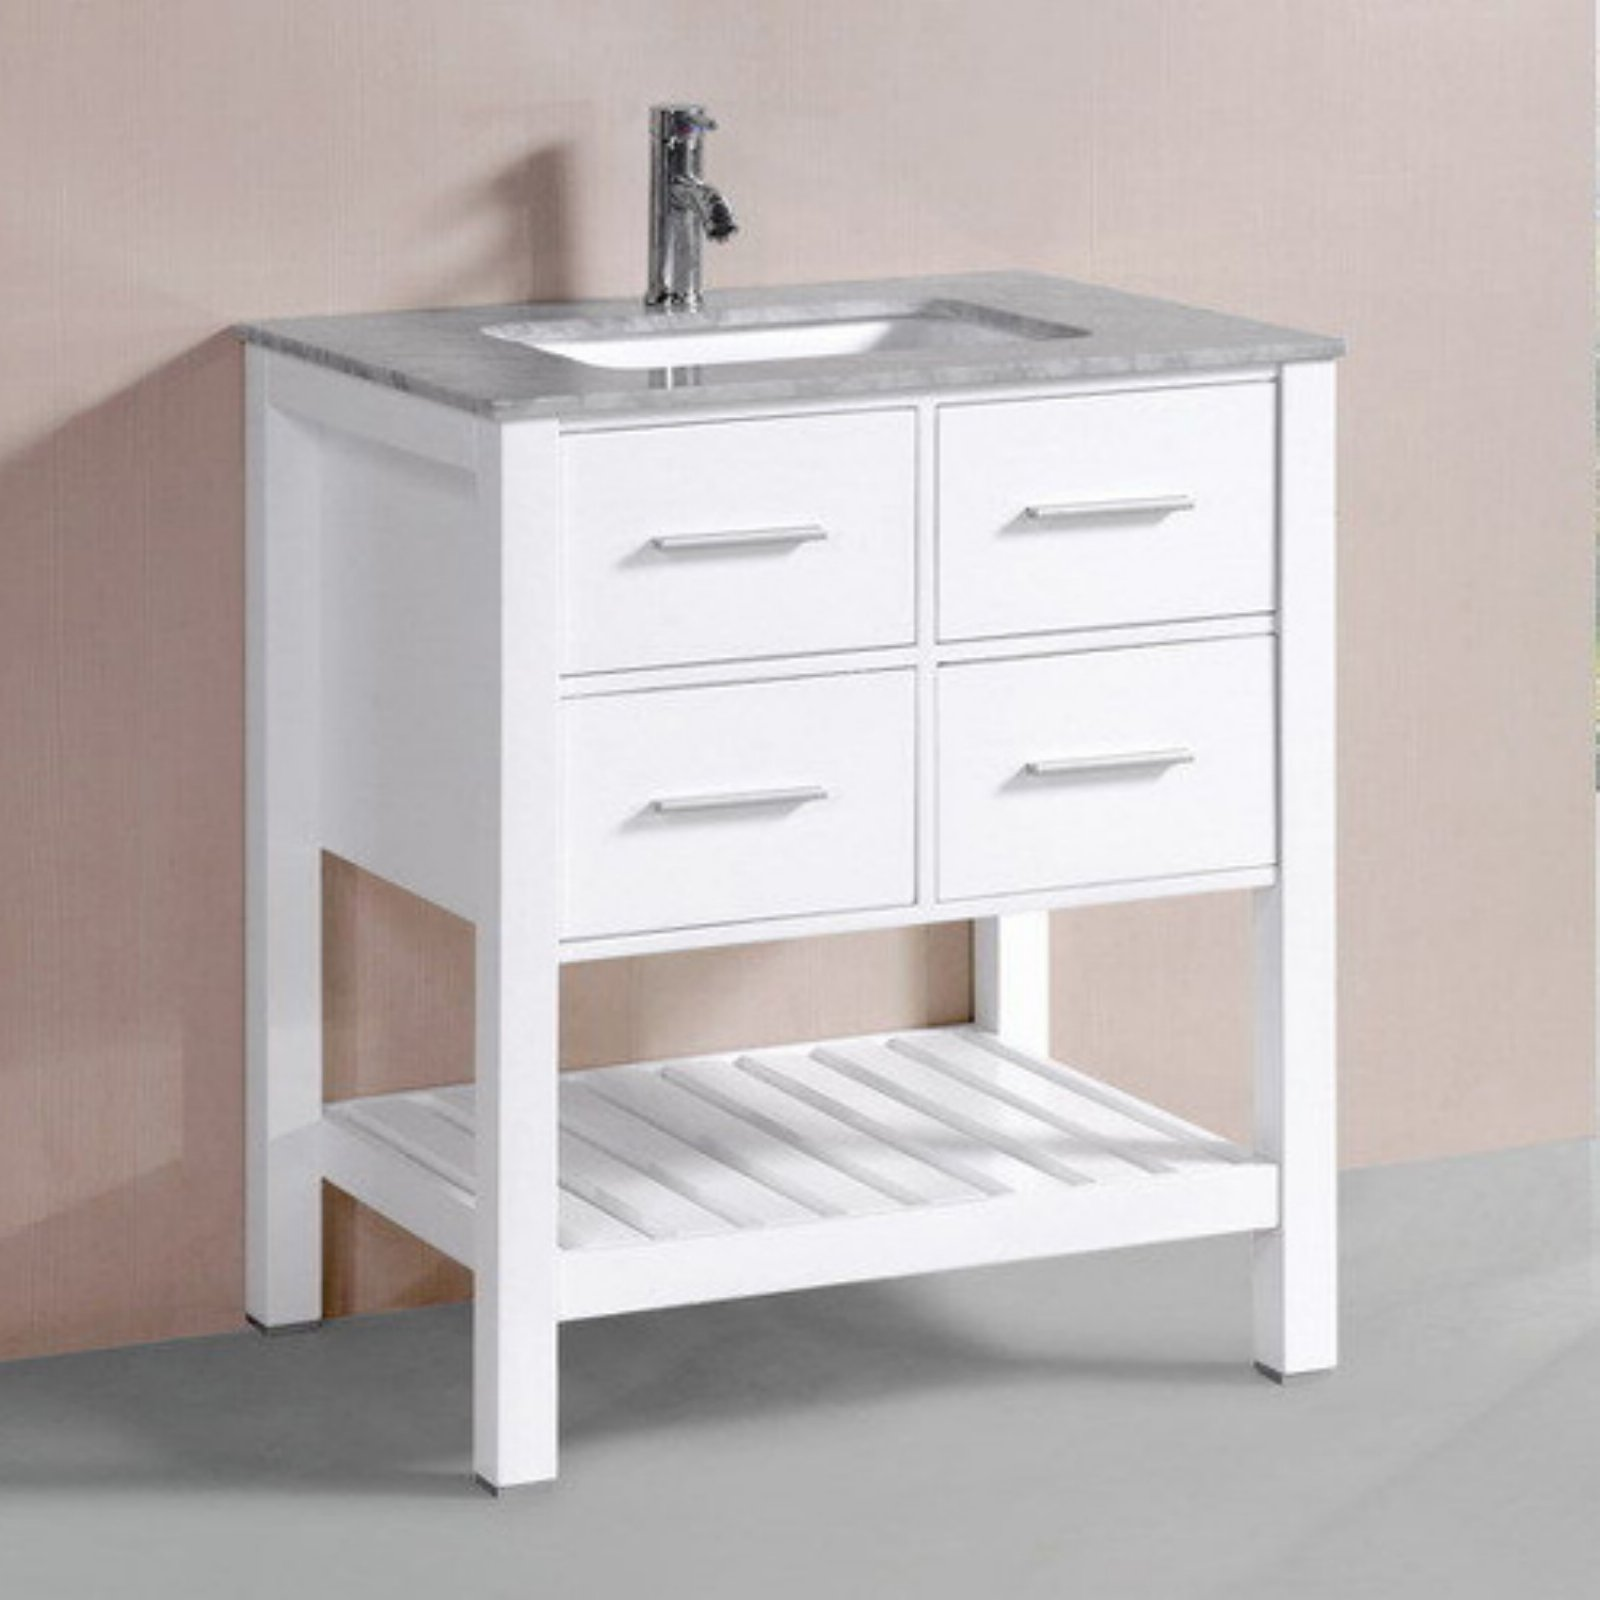 Belvedere 30 in. Single Bathroom Vanity with Marble Top by Belvedere Bath LLC